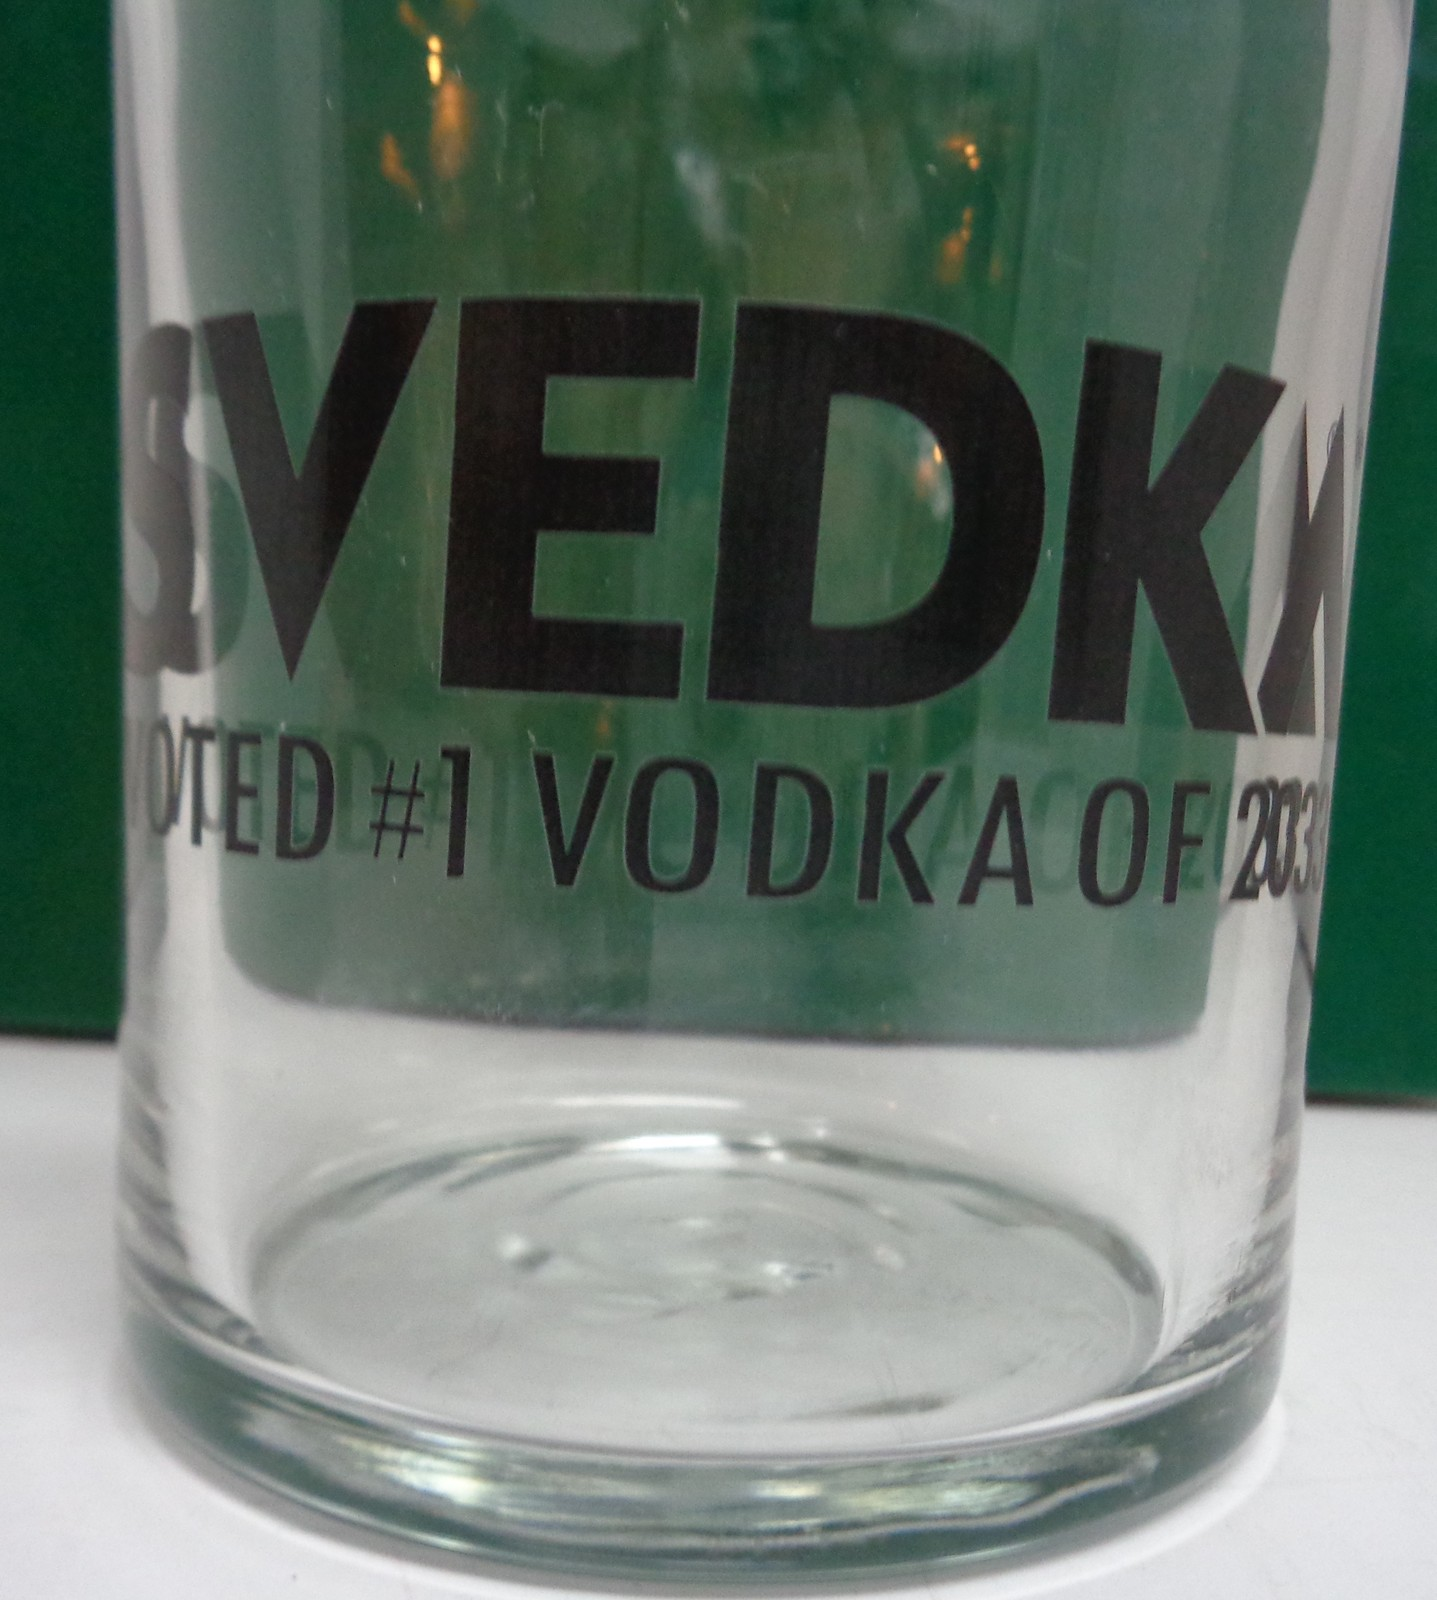 Svedka Vodka Decanter Voted #1 Vodka of 2033